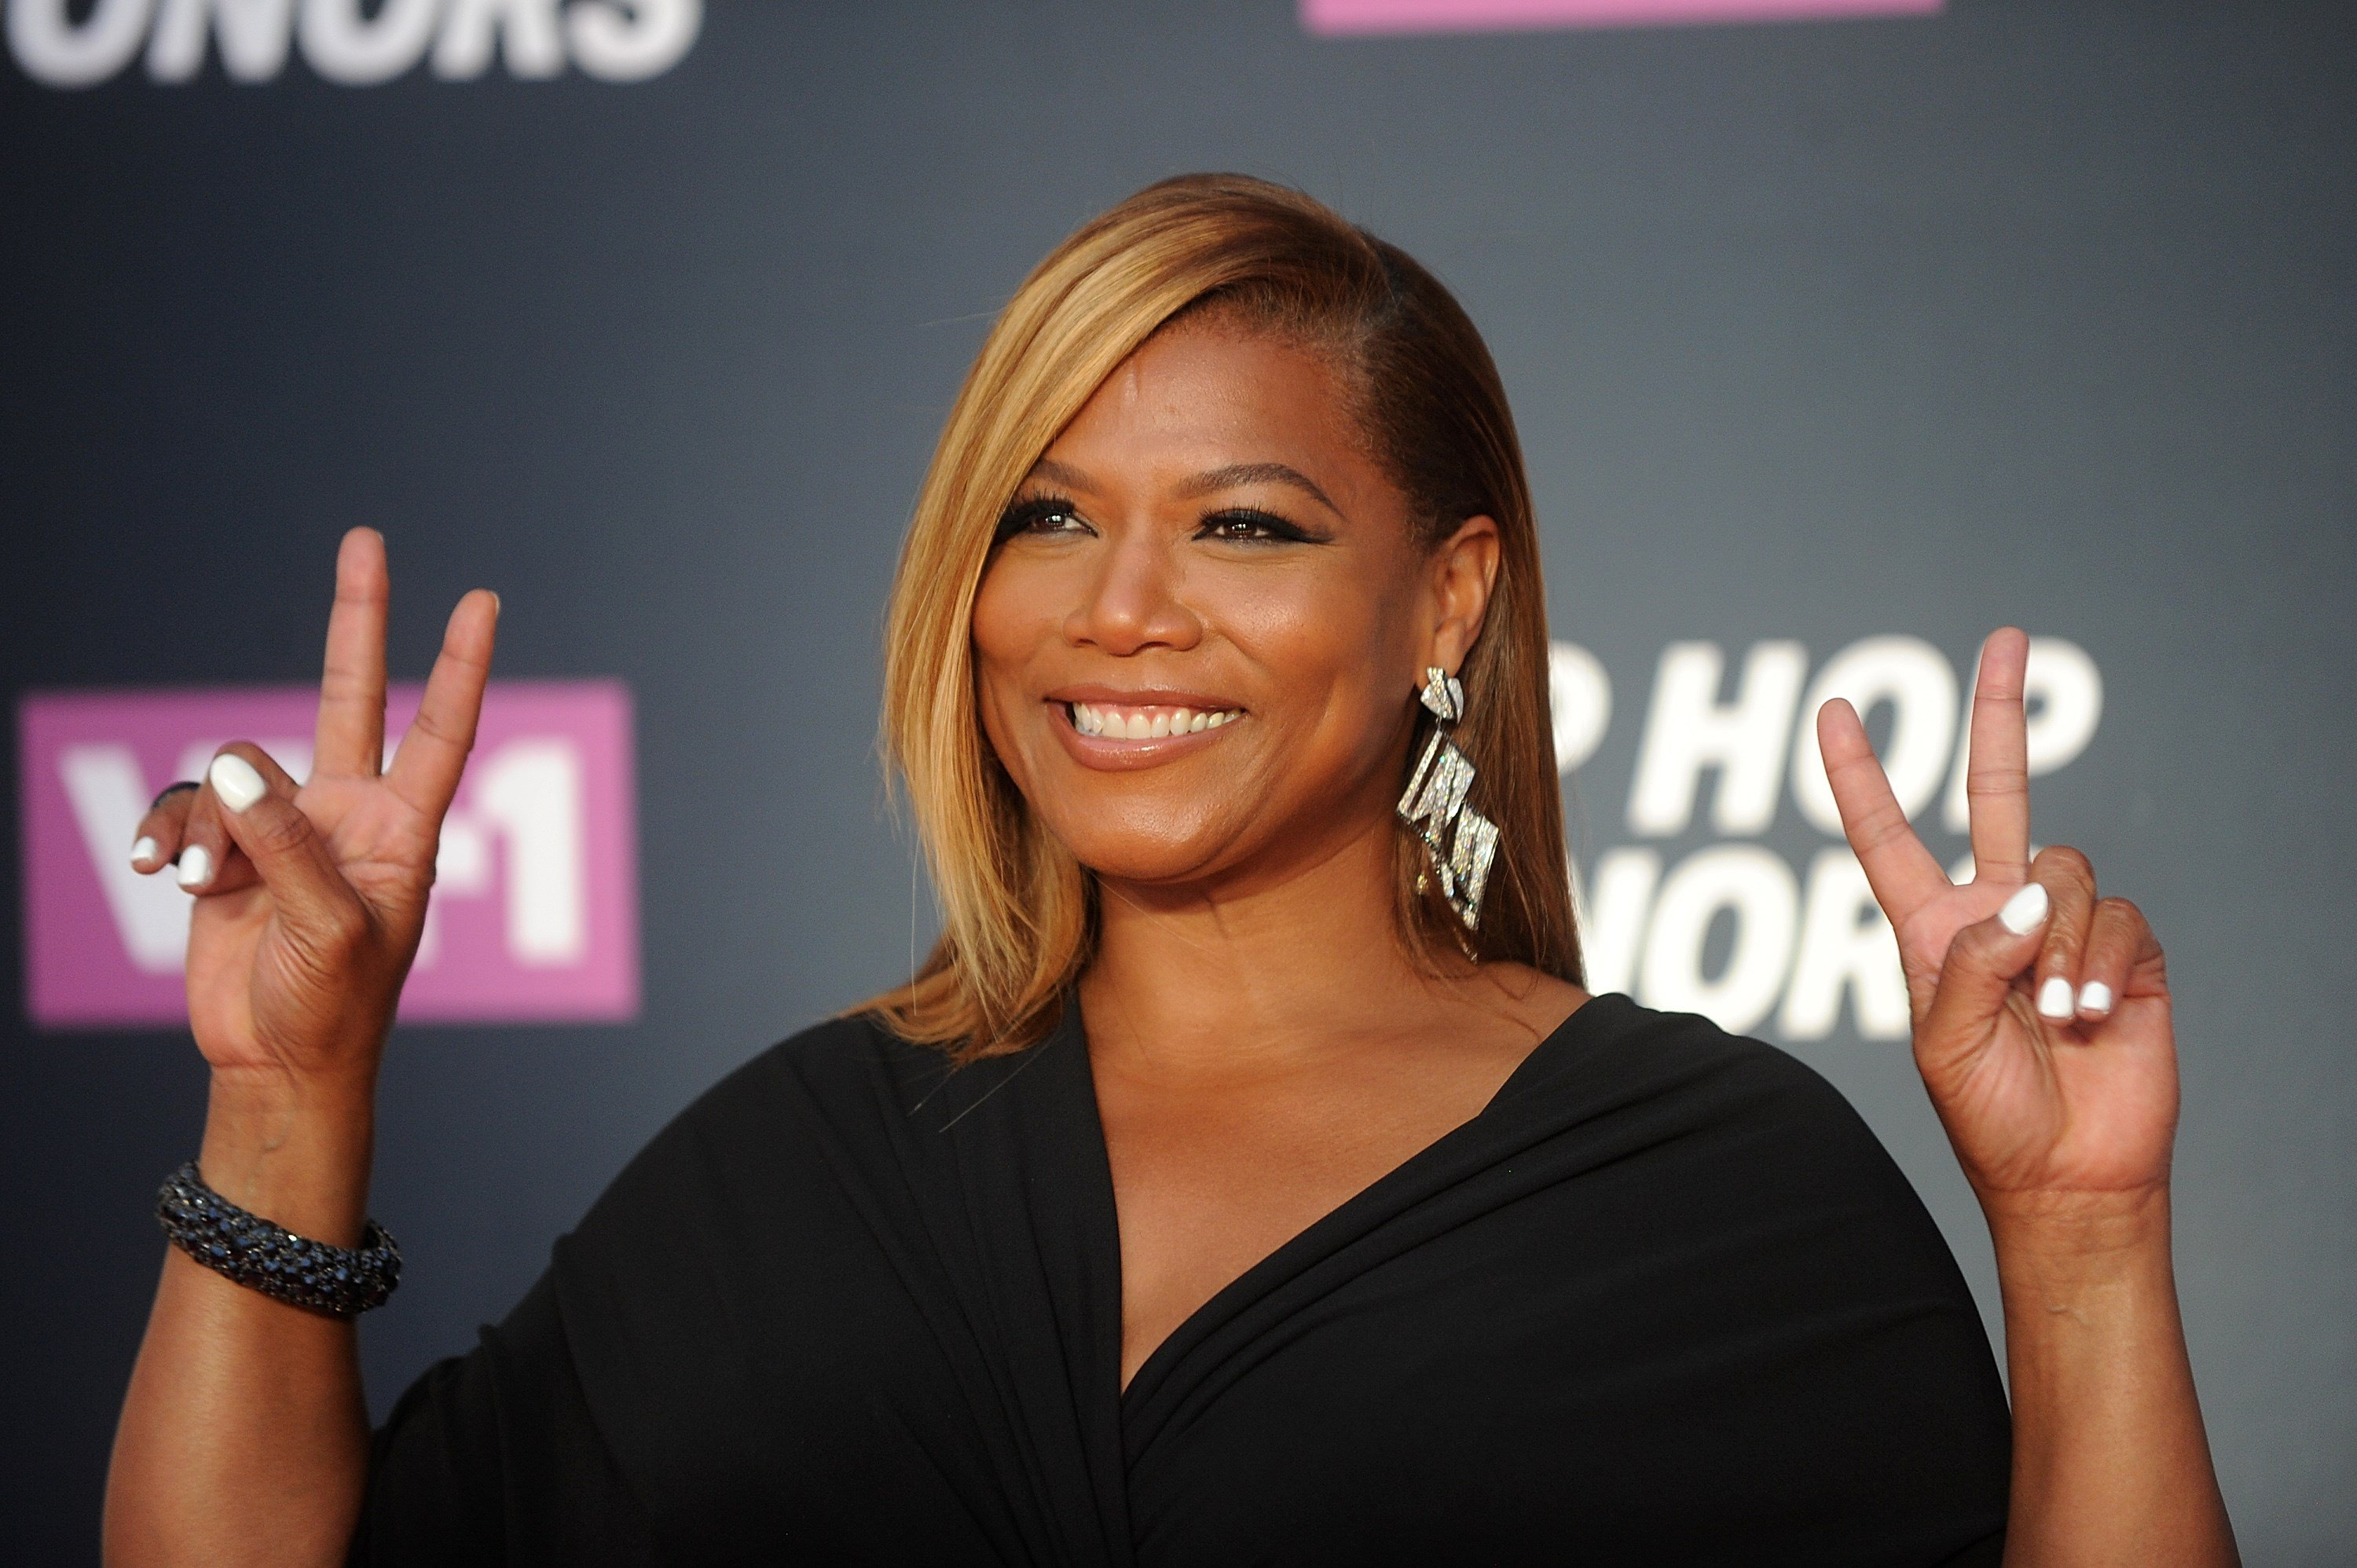 Queen Latifah (Source: Associated Press, 2016)